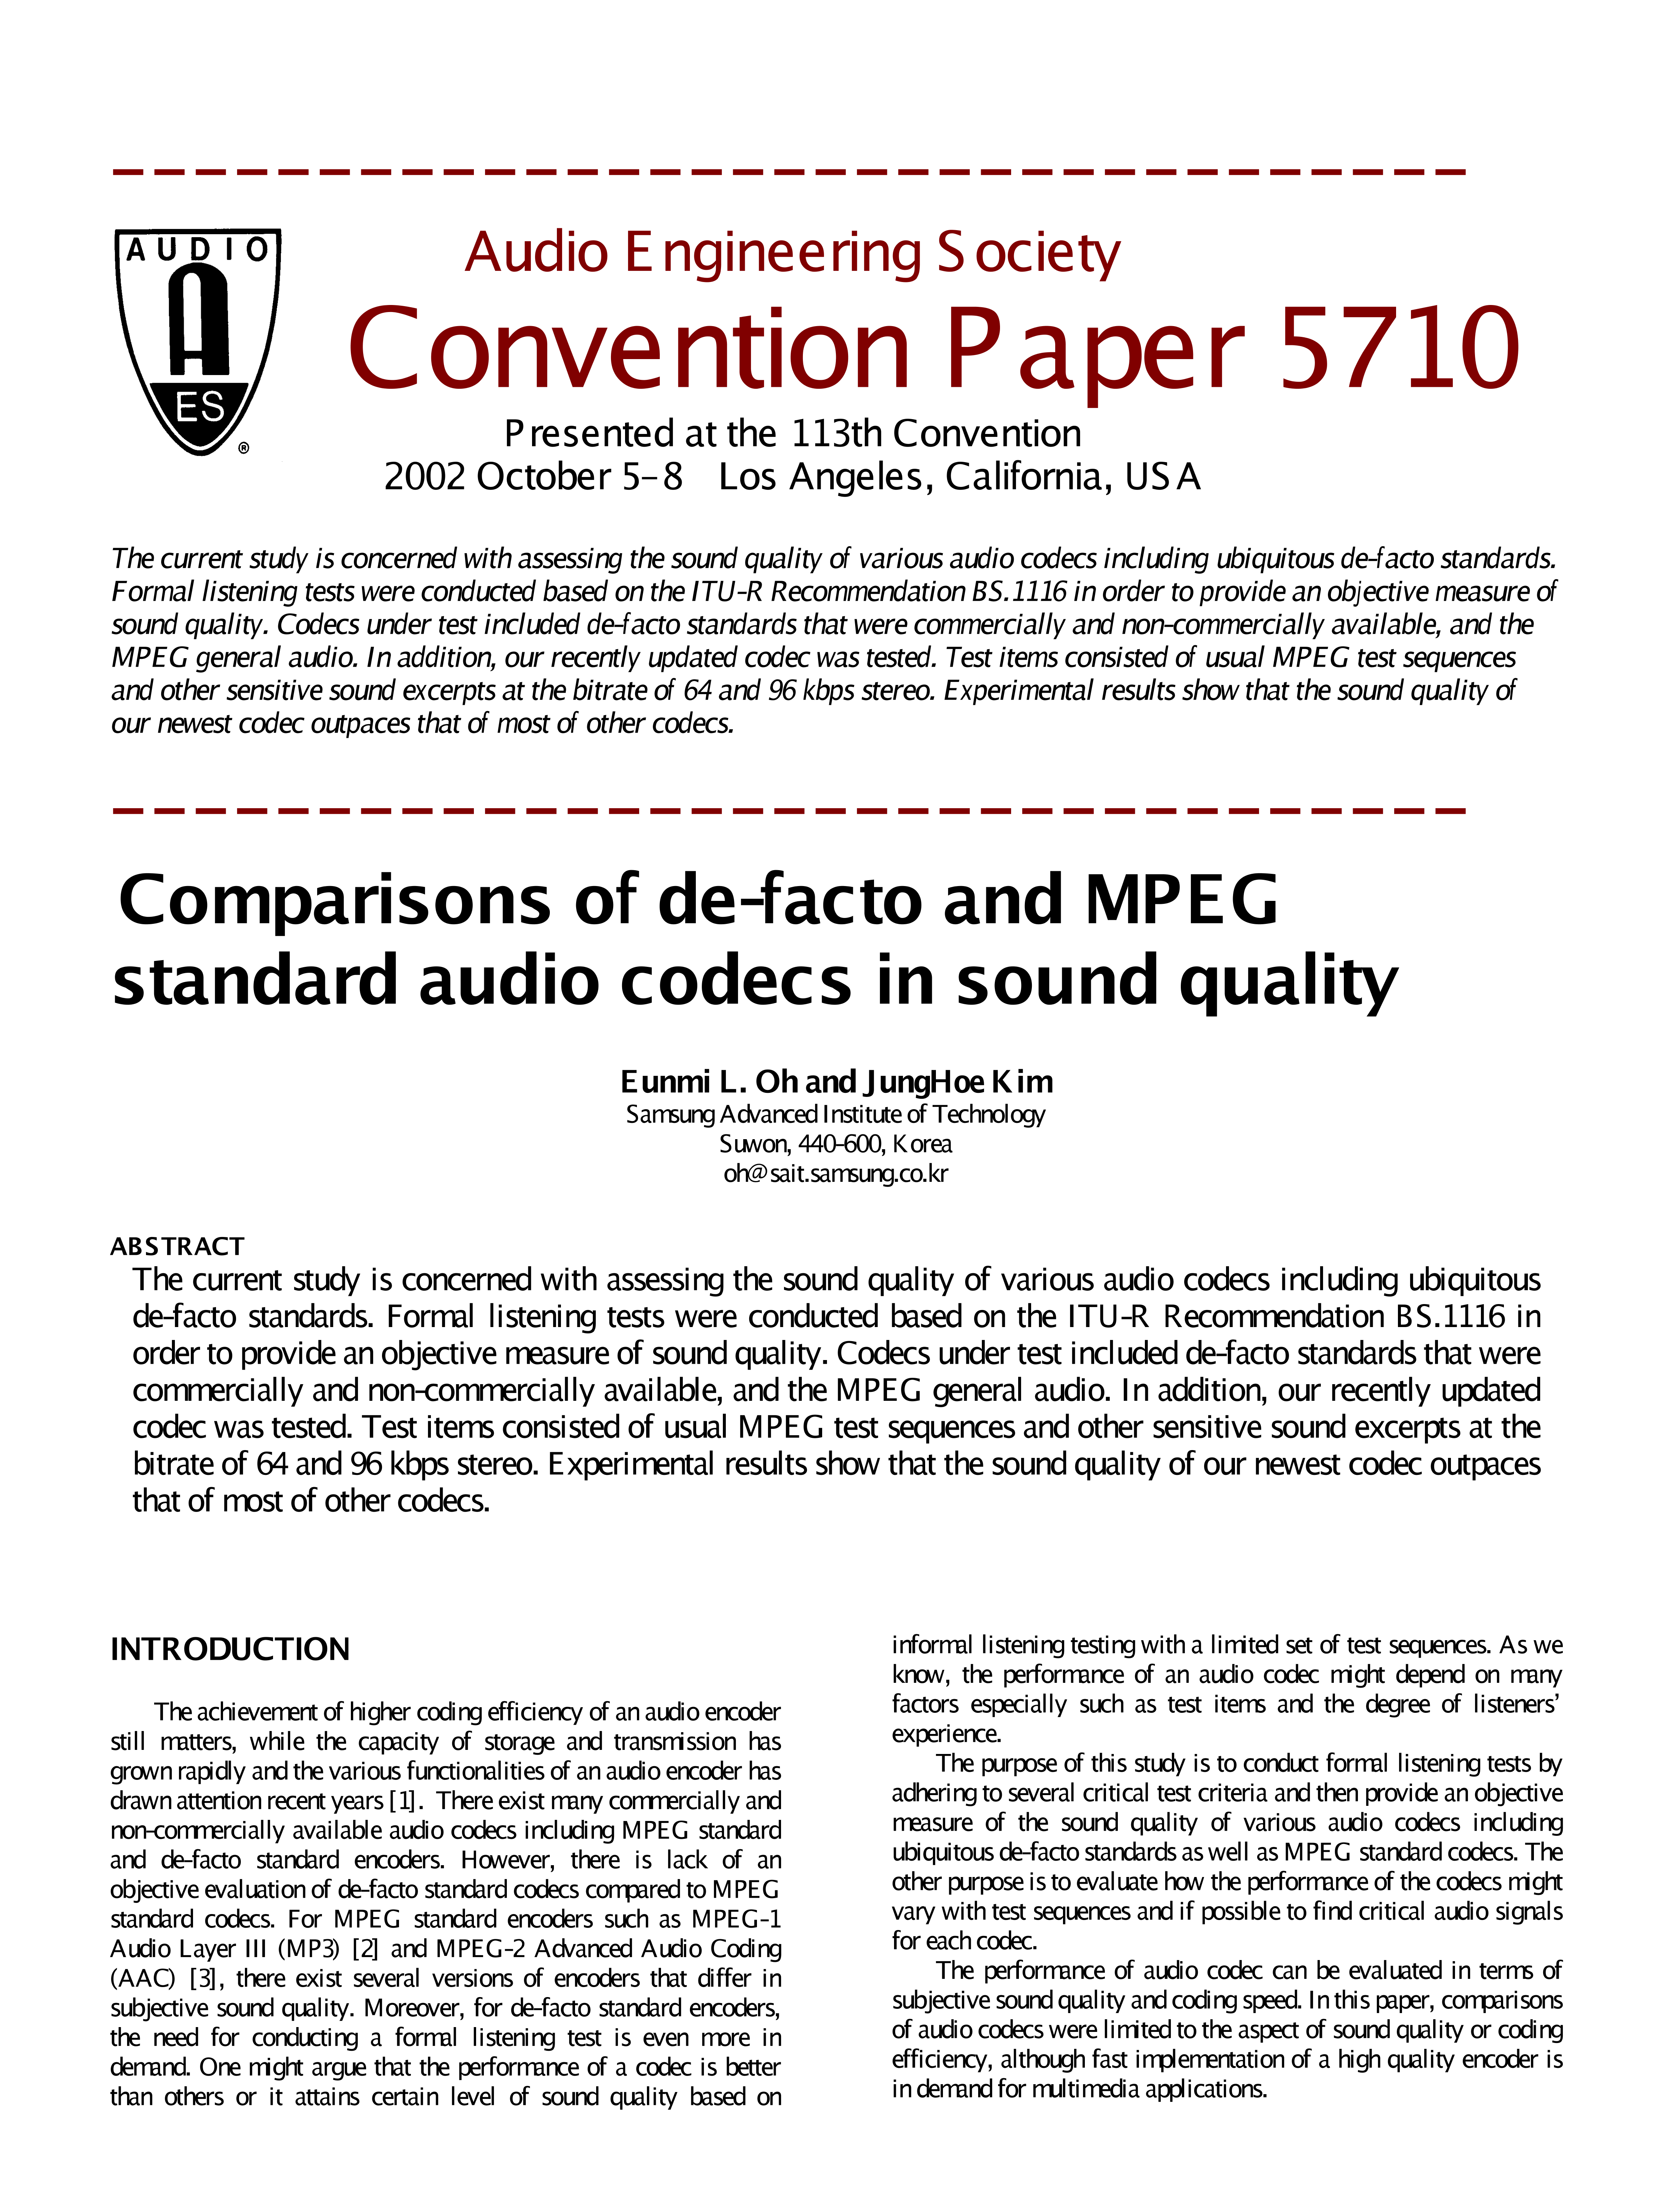 AES E-Library » Comparisons of De-Facto and MPEG Standard